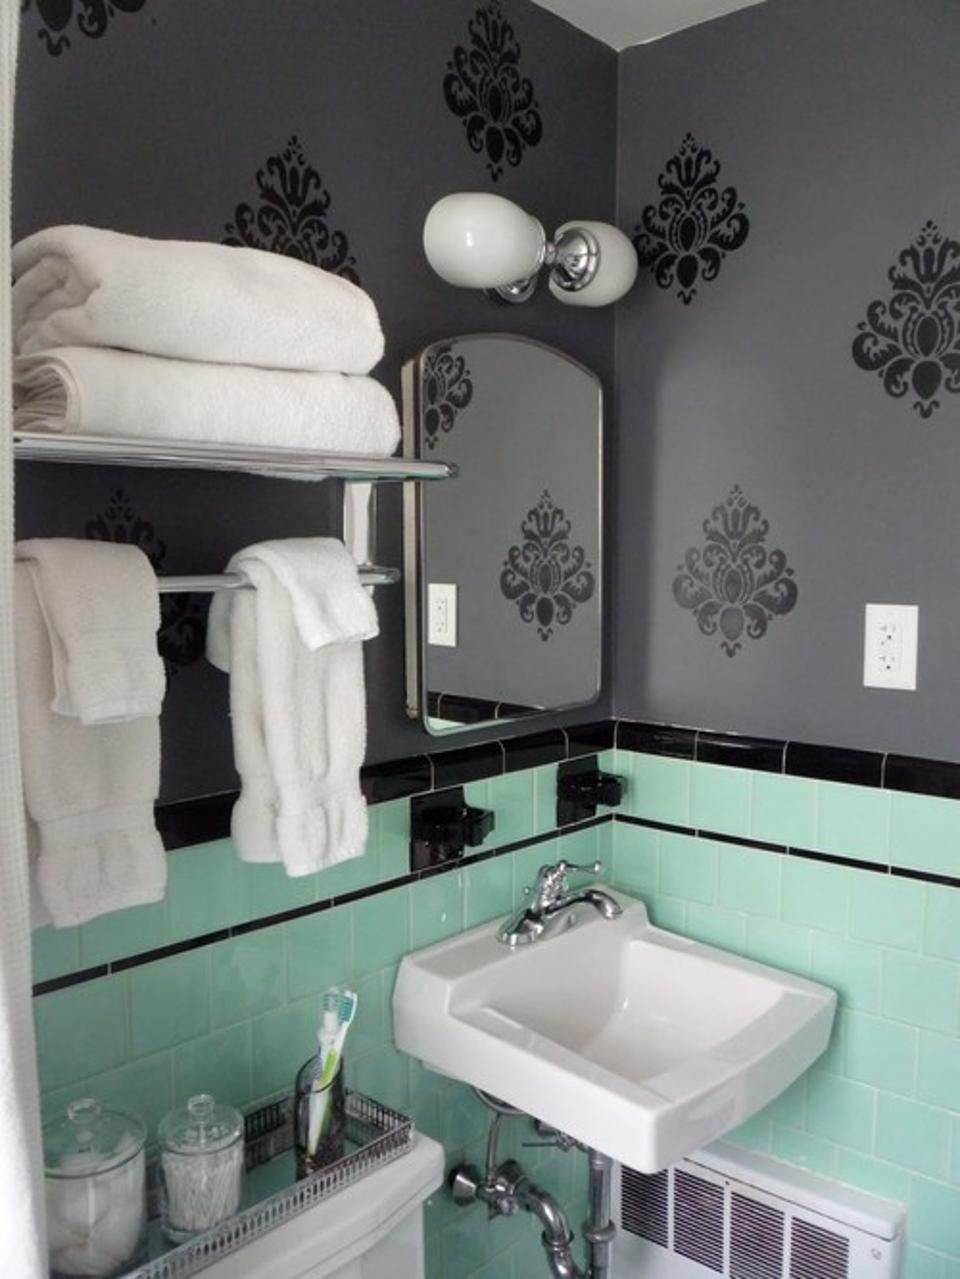 Mint Tiles Got You Feeling Blue Dont Demolish Distract The Eye - Pink towels for small bathroom ideas